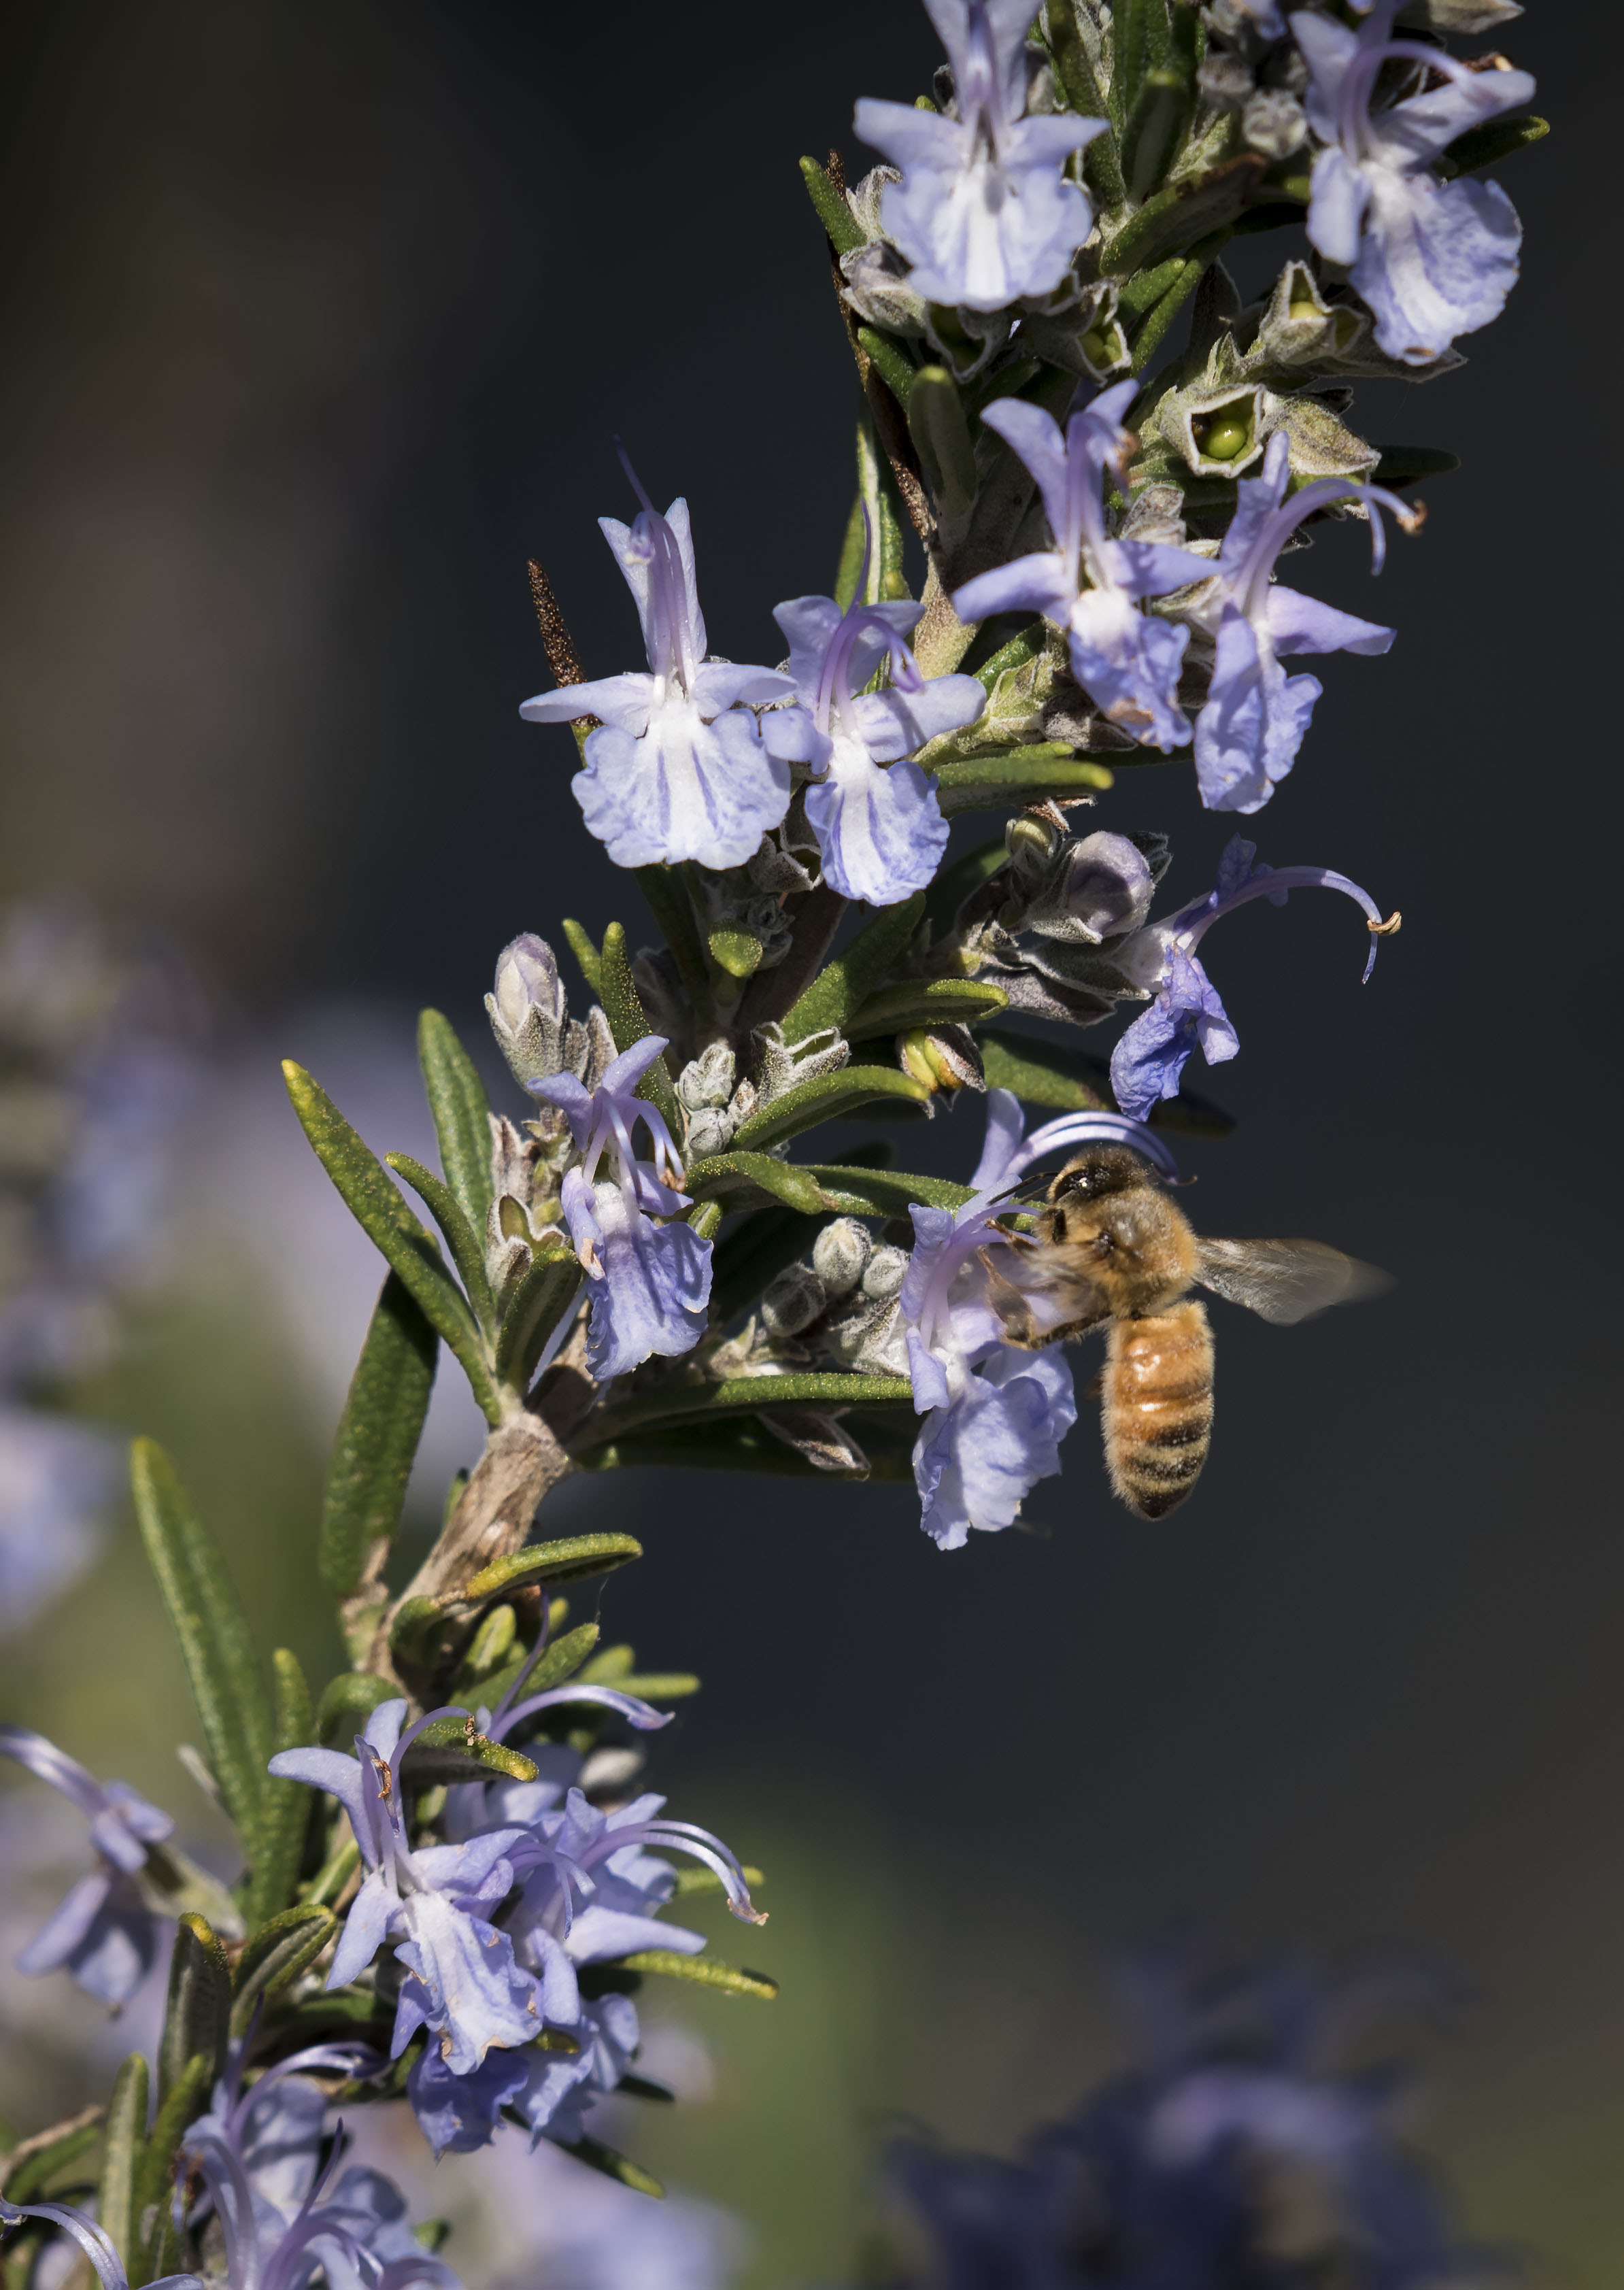 Bee next to a lavender flower